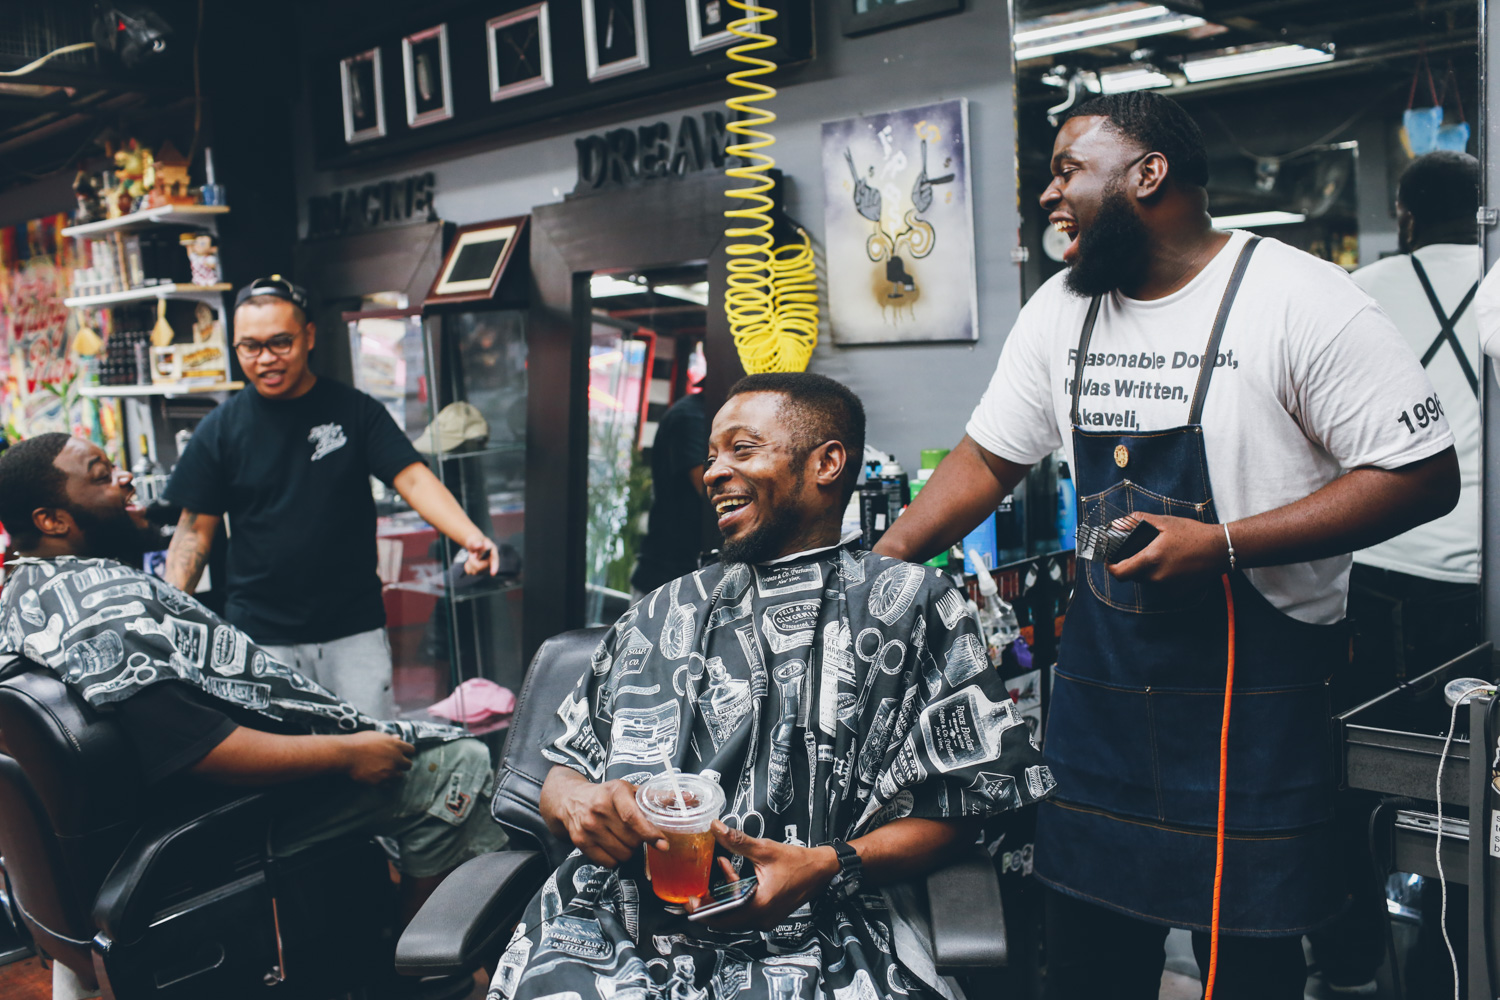 Jungle and Snacks getting their haircut in Filthy Rich Barbershop